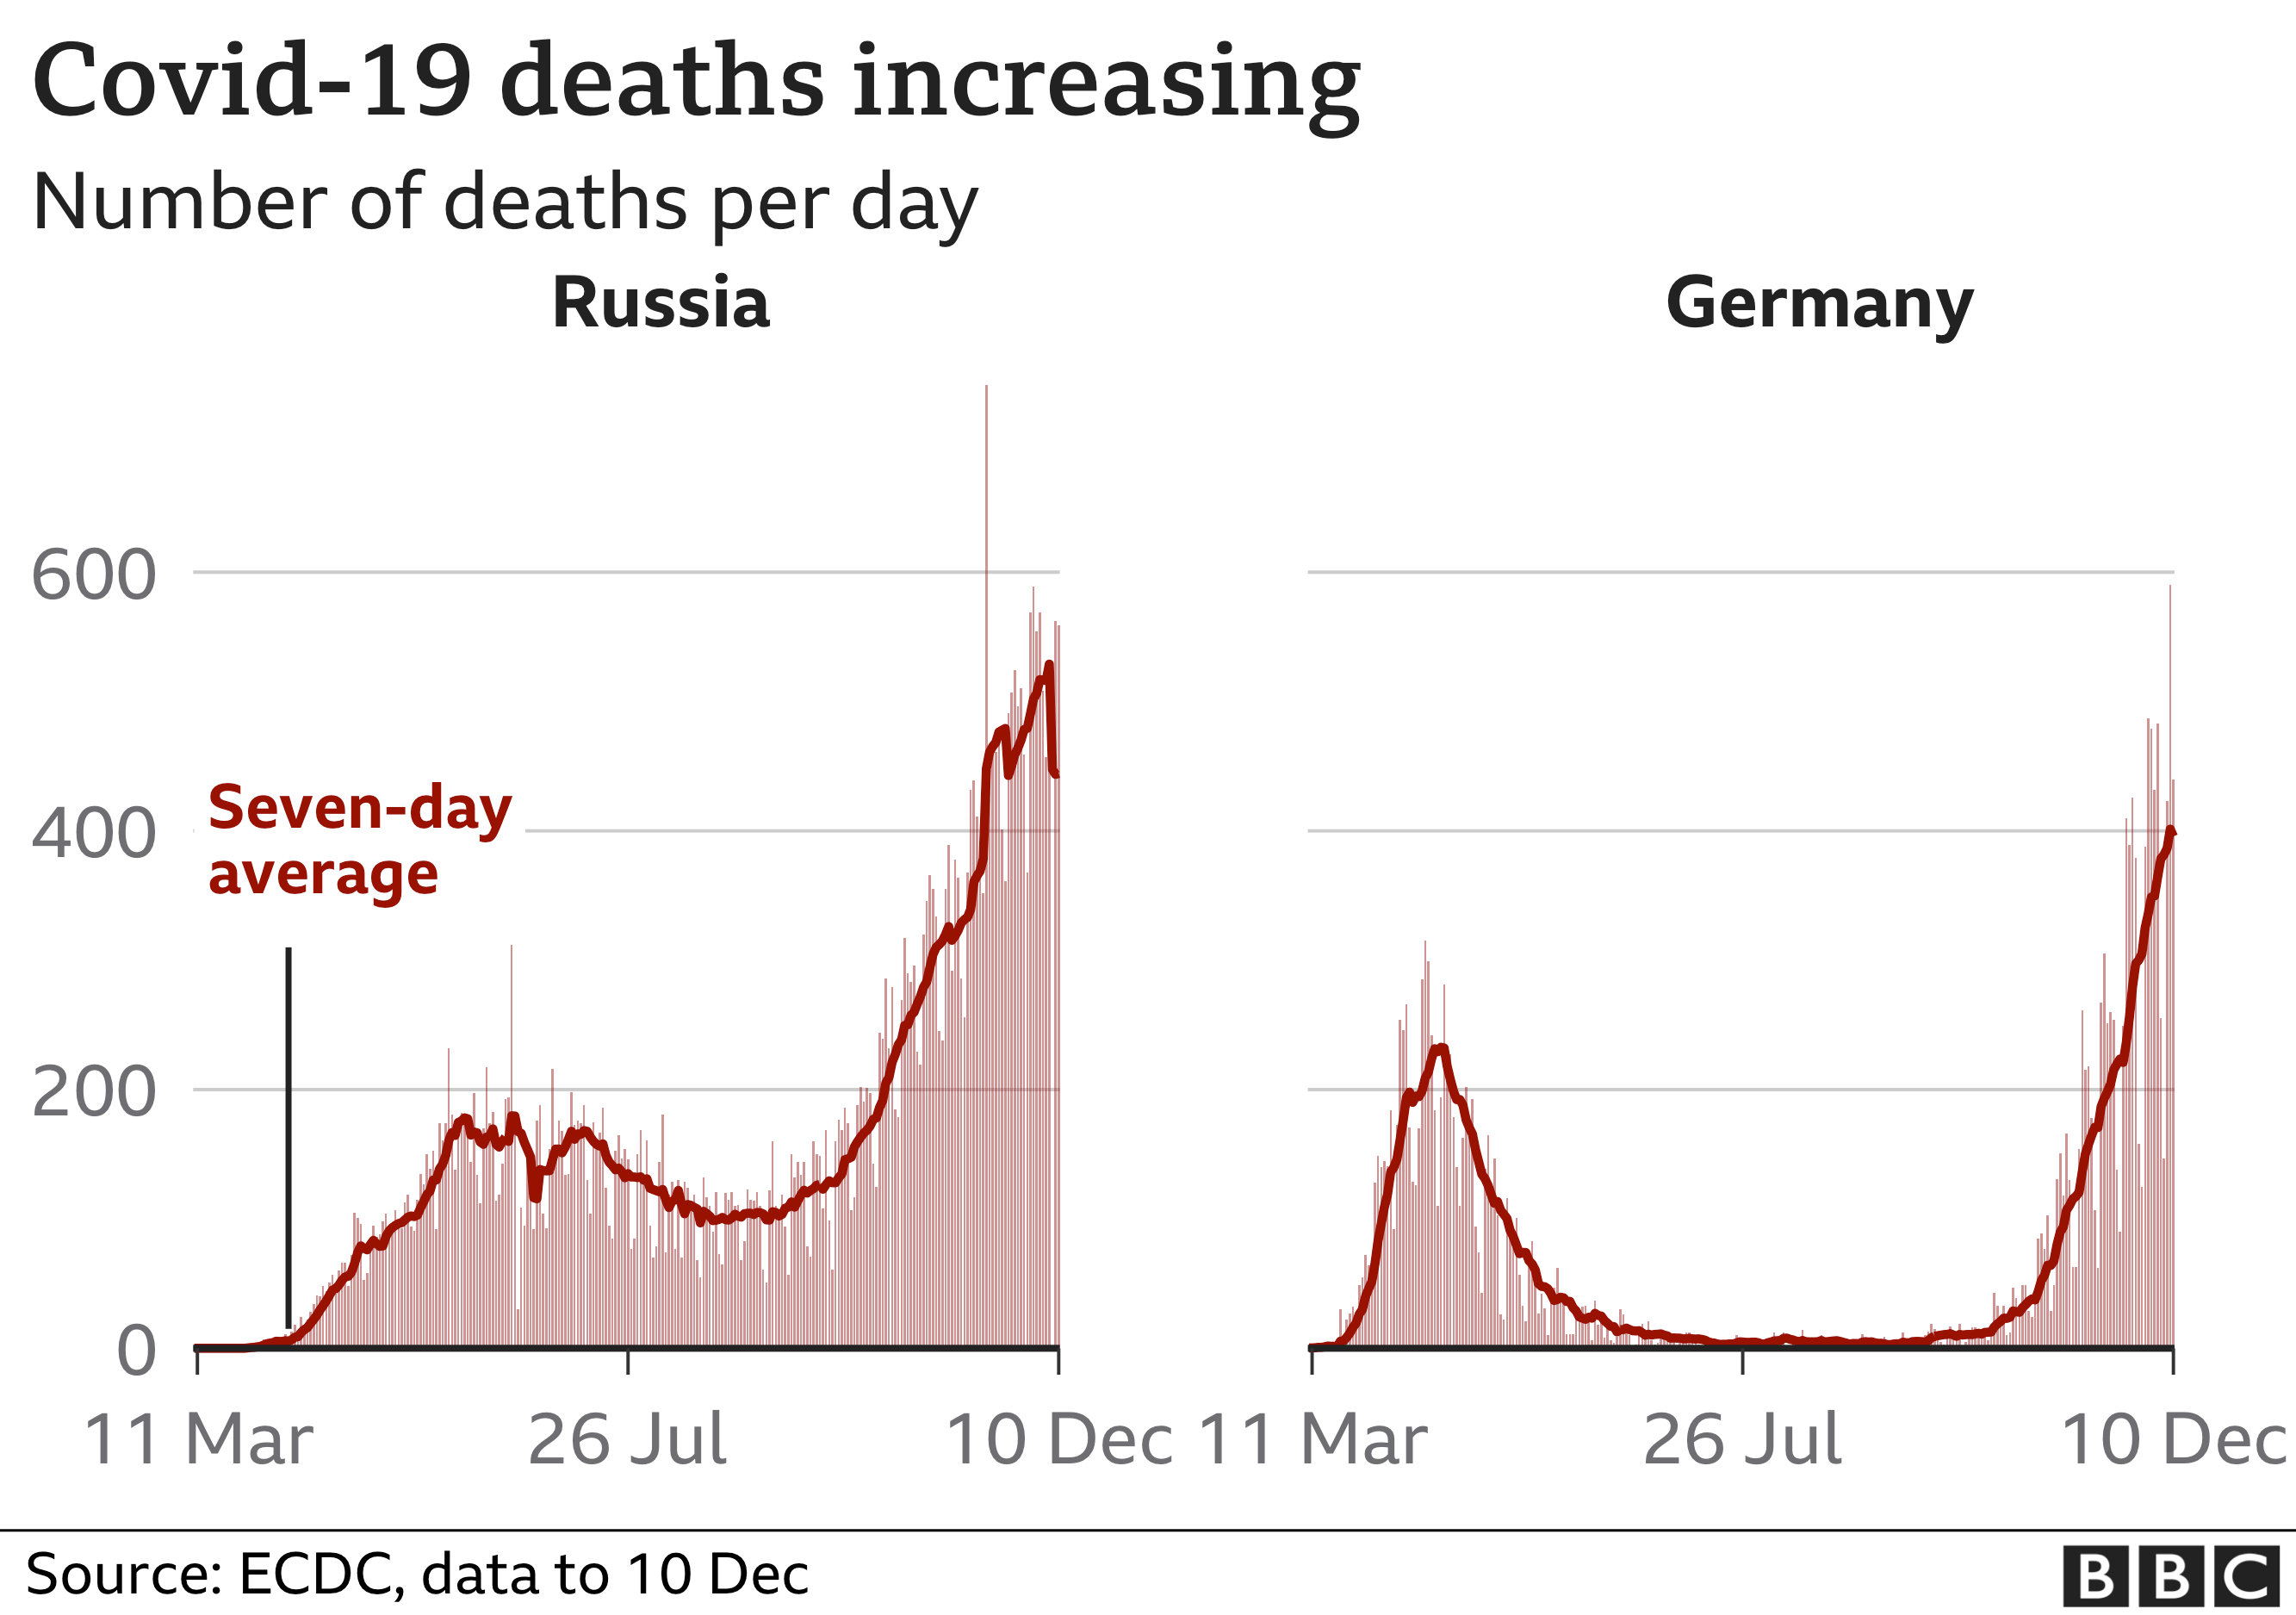 Covid-19 deaths in Russia and Germany graphic